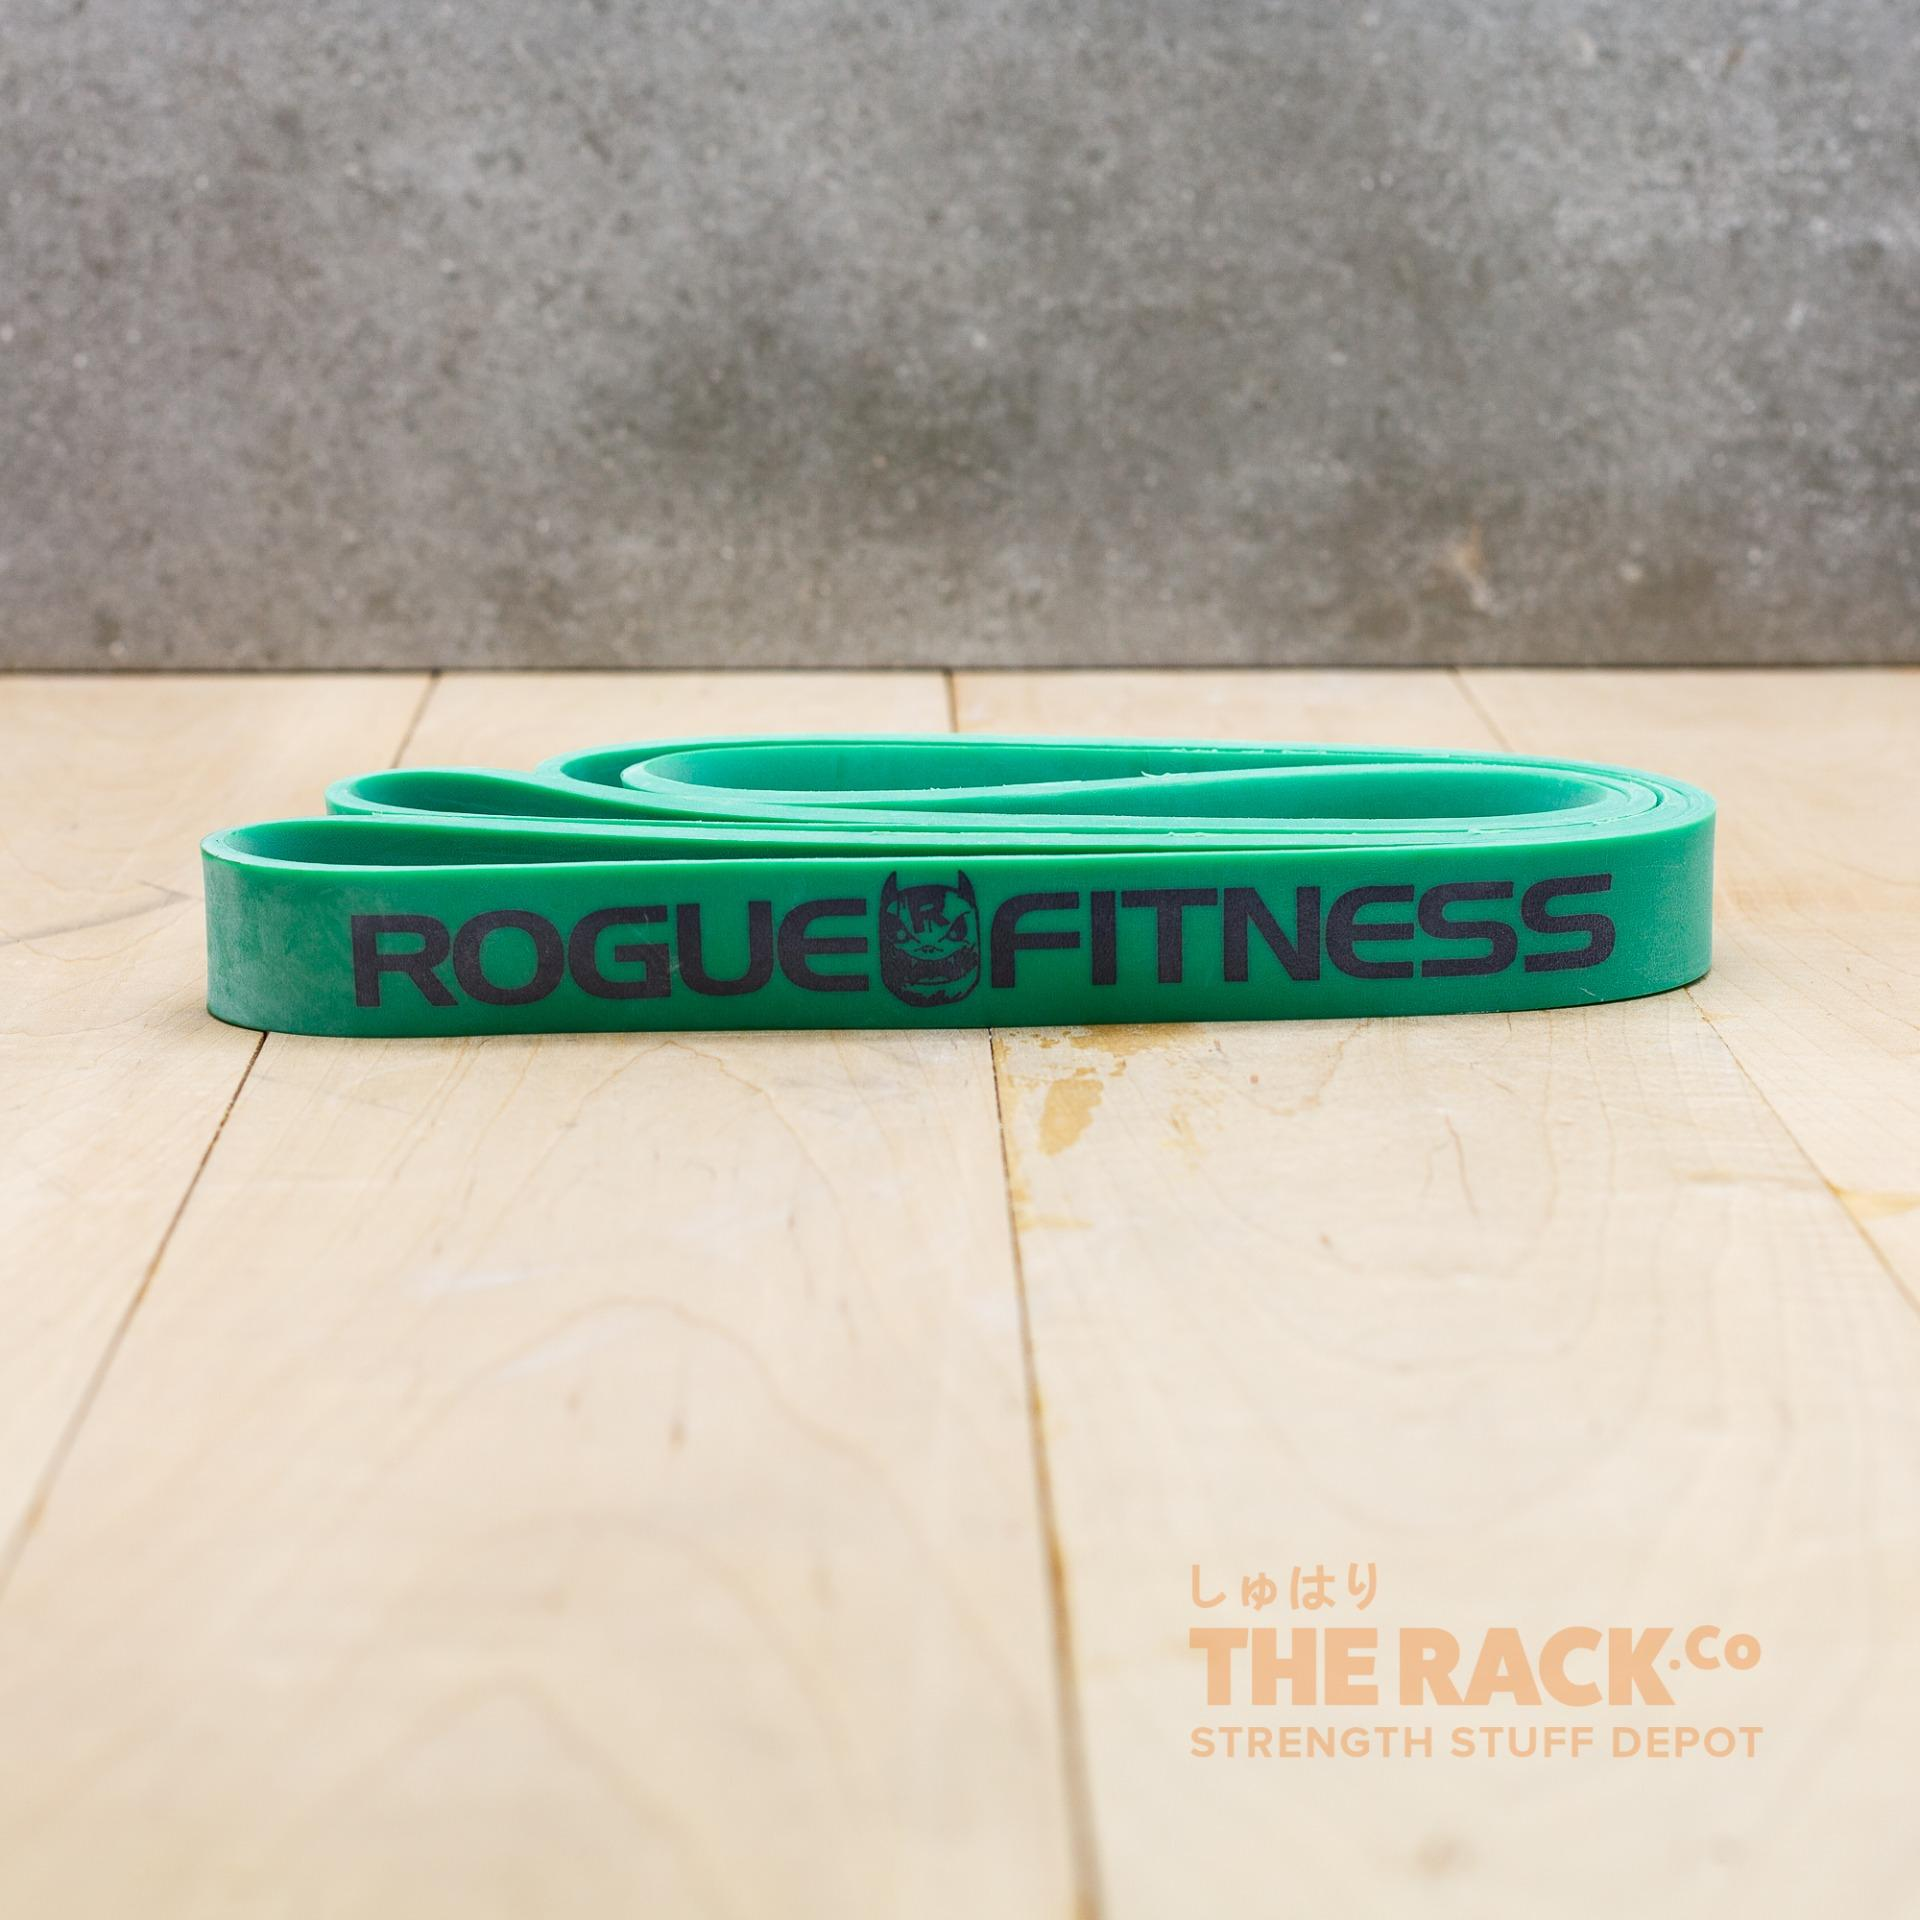 Rogue Monster Exercise Resistance Bands Green (65lbs )